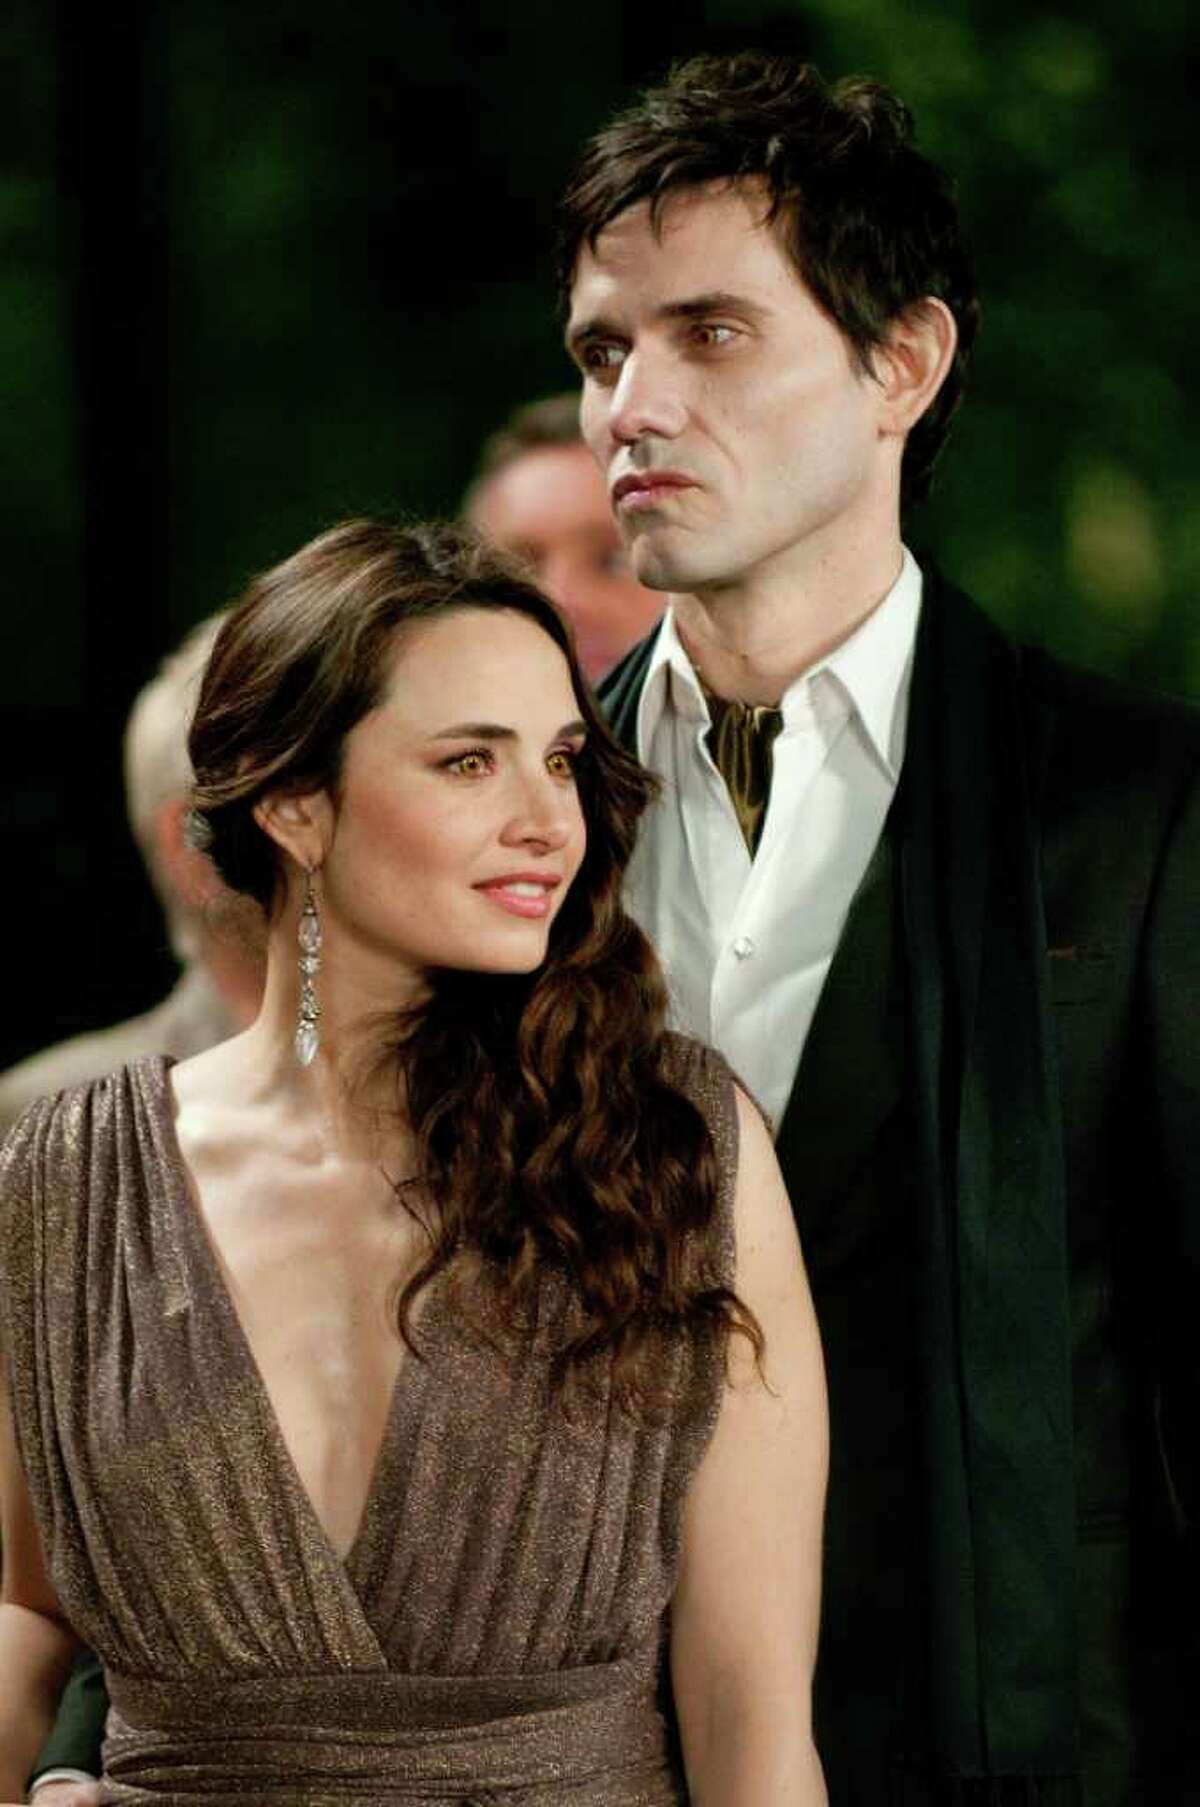 MIA MAESTRO and CHRISTIAN CAMARGO star in THE TWILIGHT SAGA: BREAKING DAWN - PART 1. Ph: Doane Gregory © 2011 Summit Entertainment, LLC. All rights reserved.